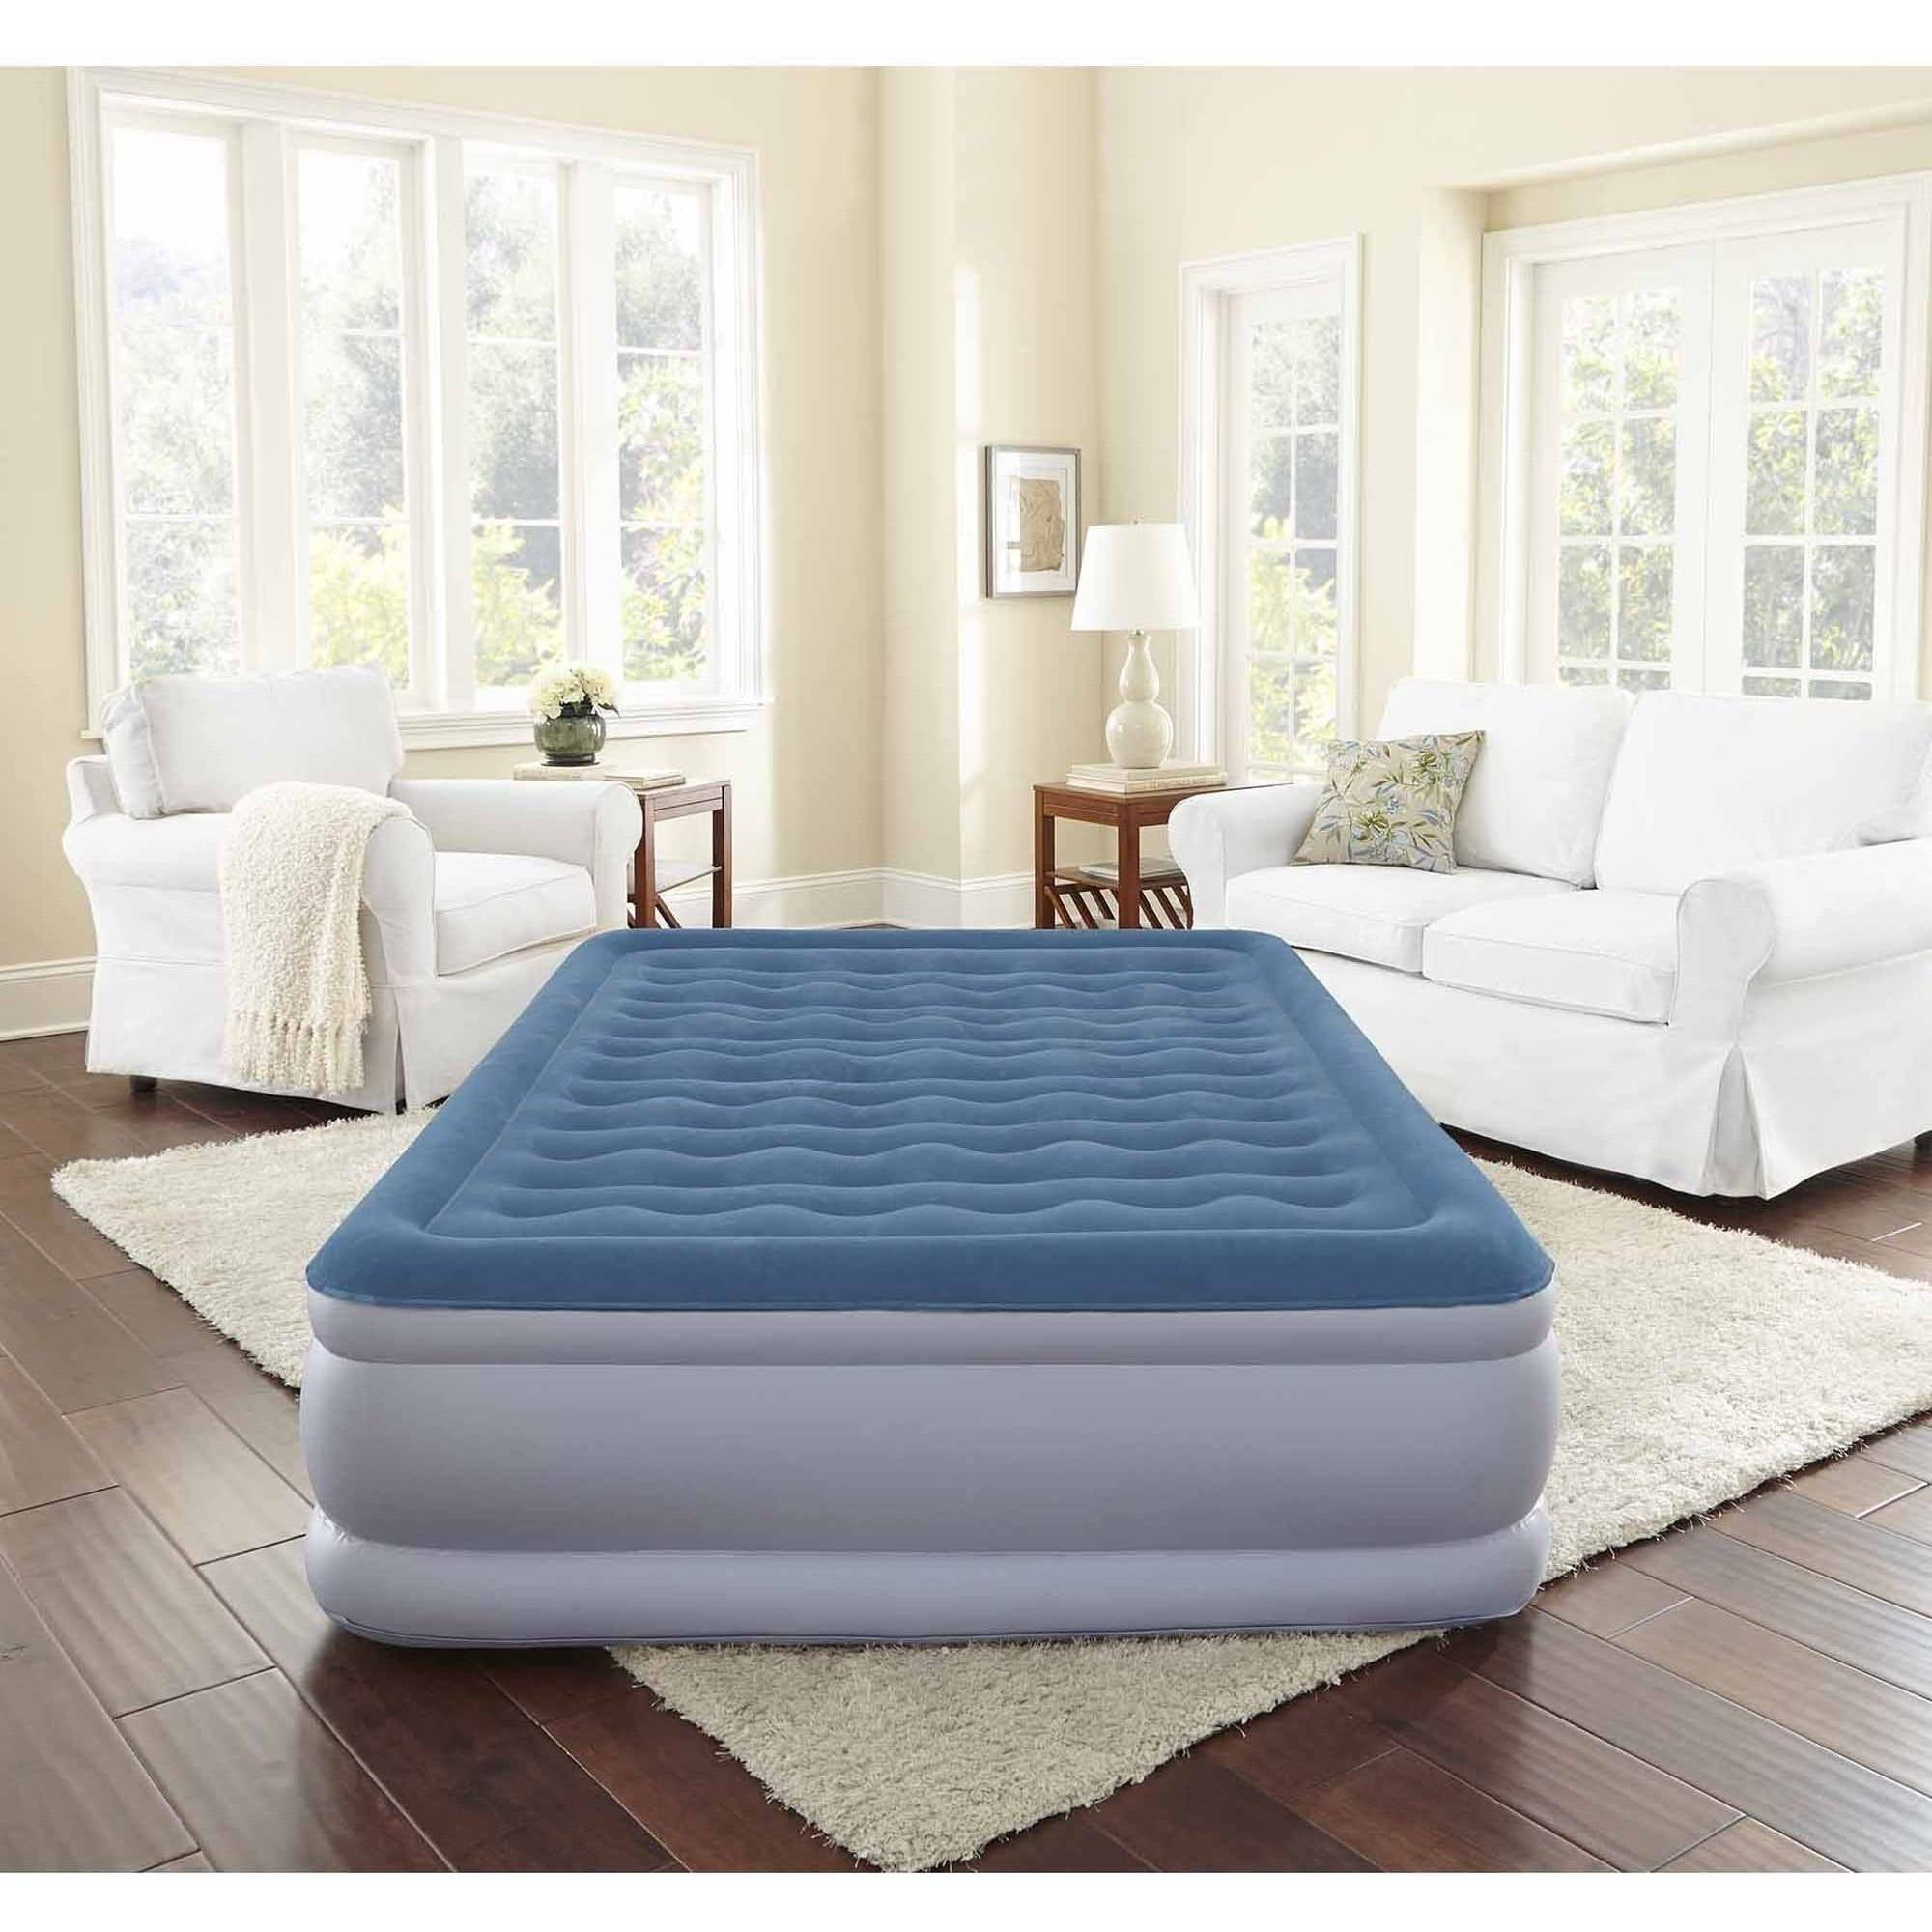 recipename profileid home pillow full costco coronado brentwood imageid bed imageservice mattress top euro mattresses